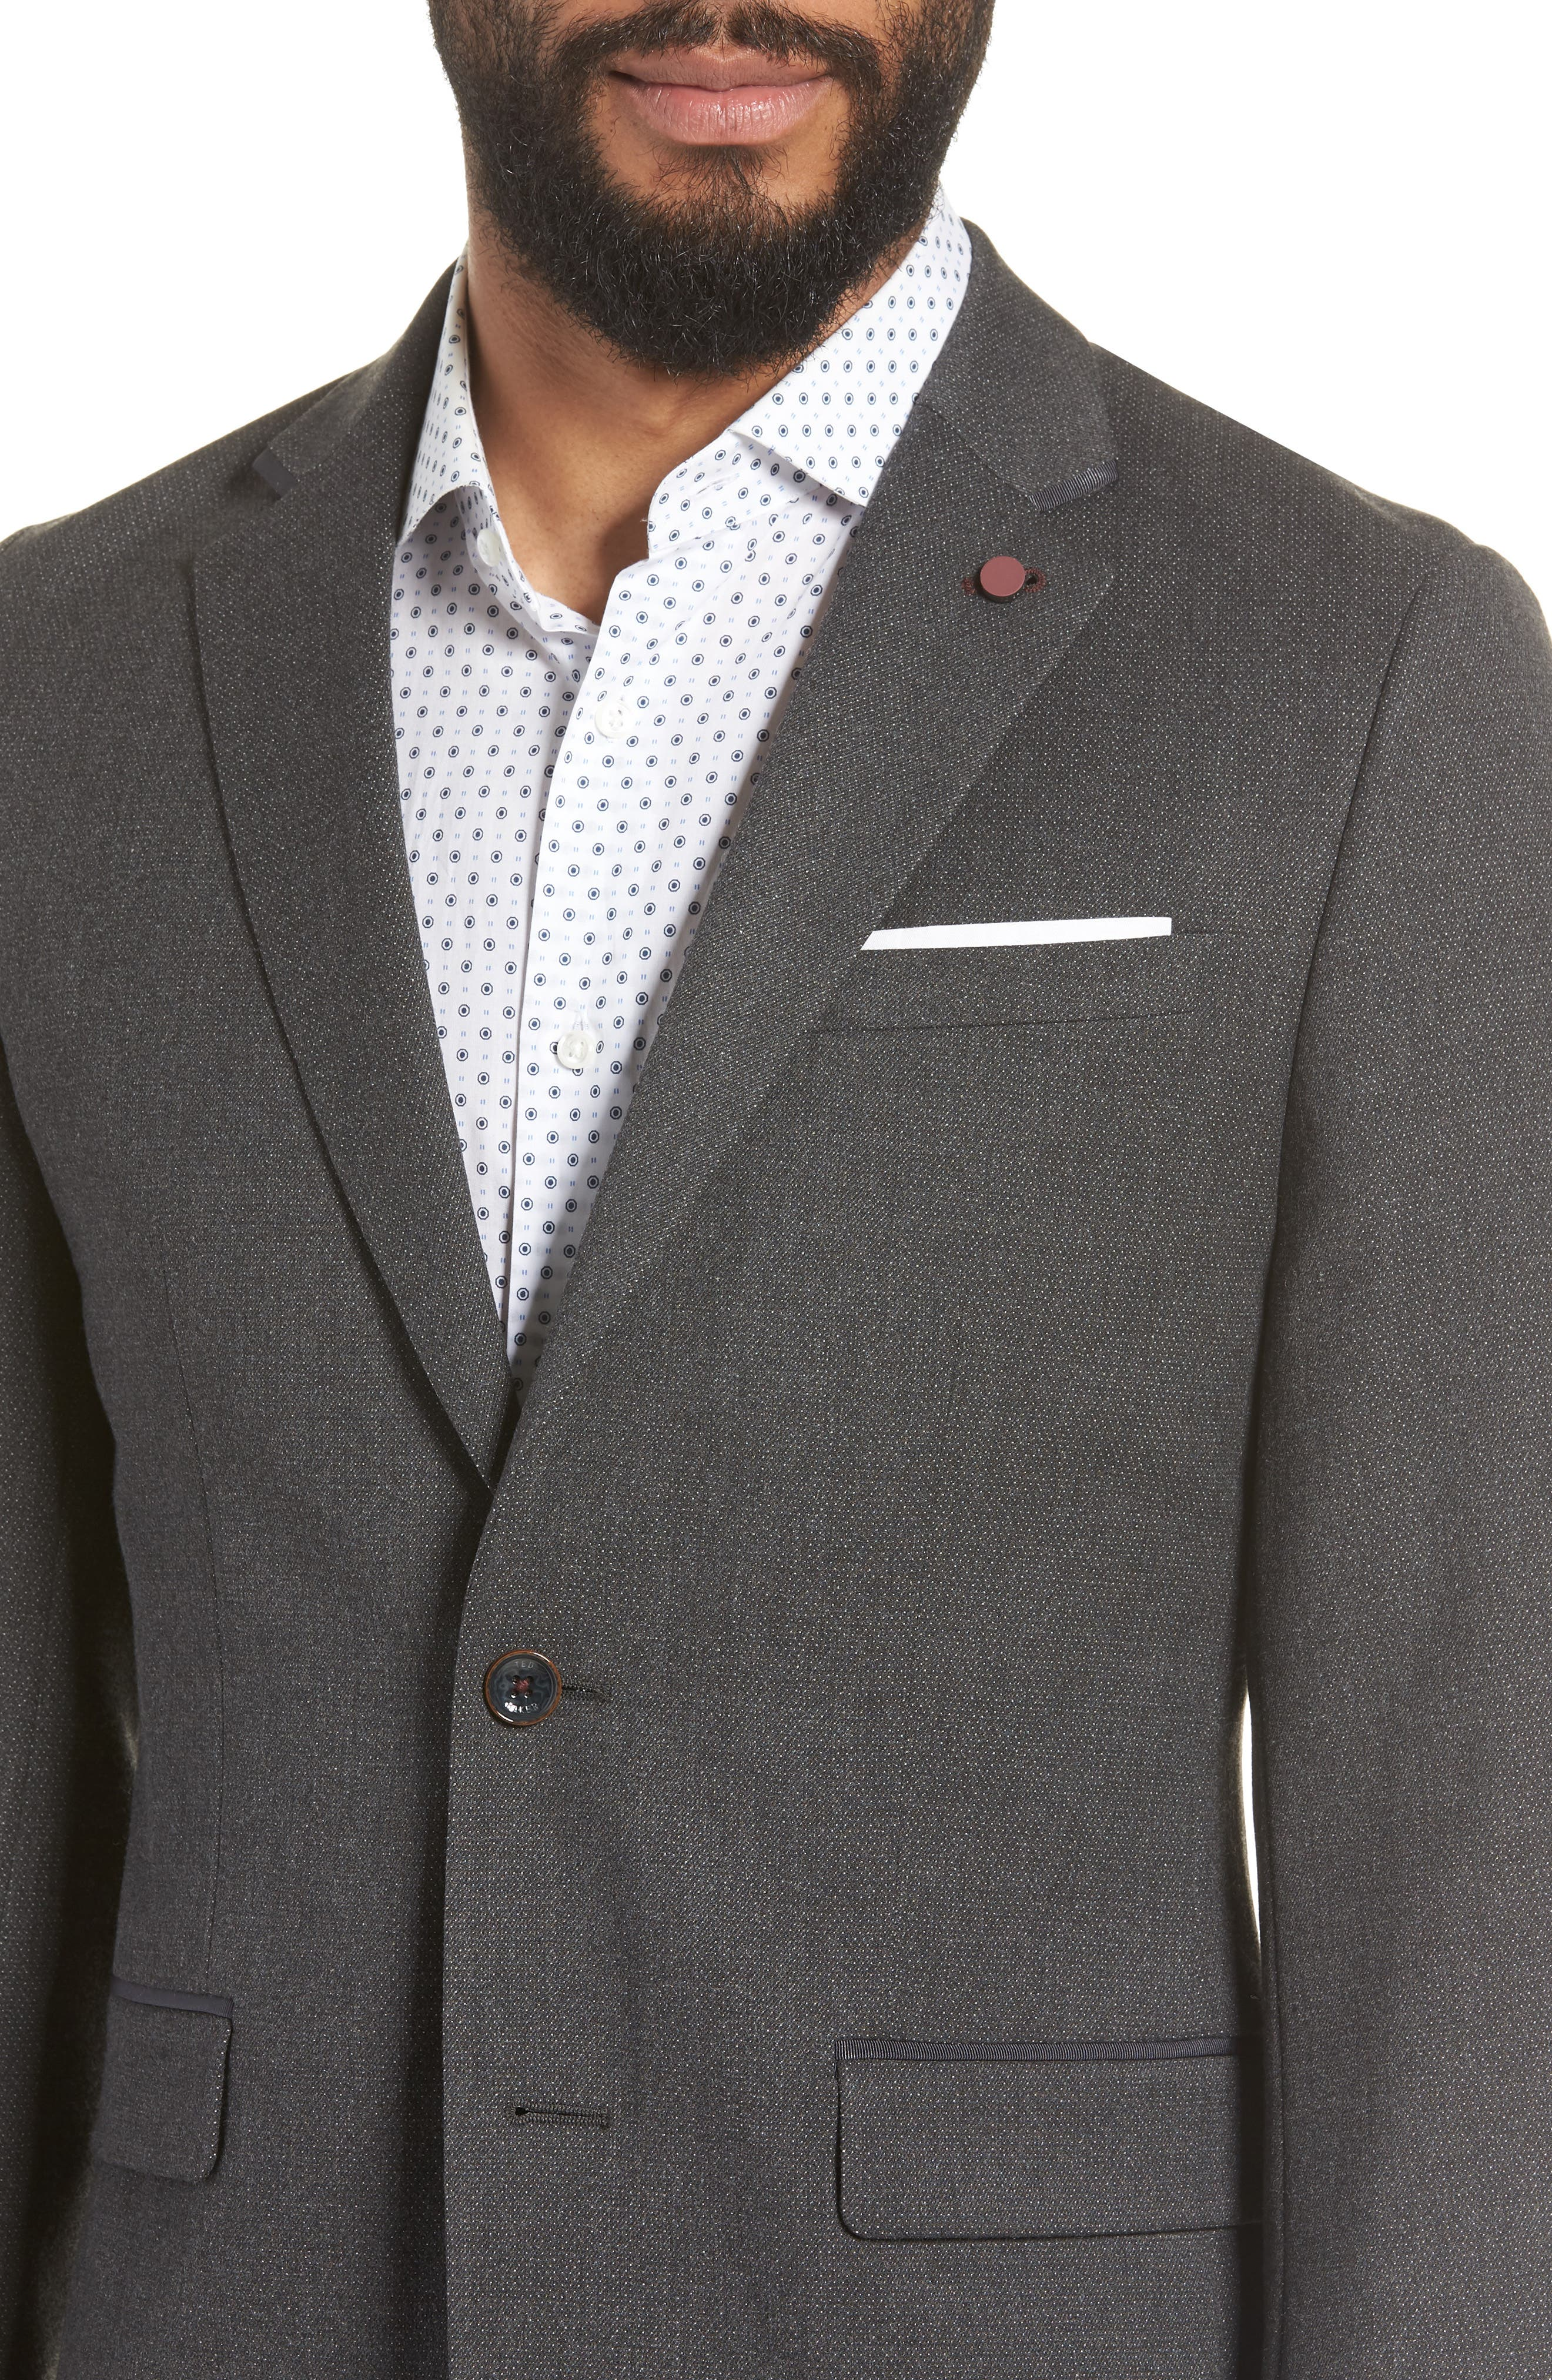 Hazlnut Trim Fit Sport Coat,                             Alternate thumbnail 4, color,                             020